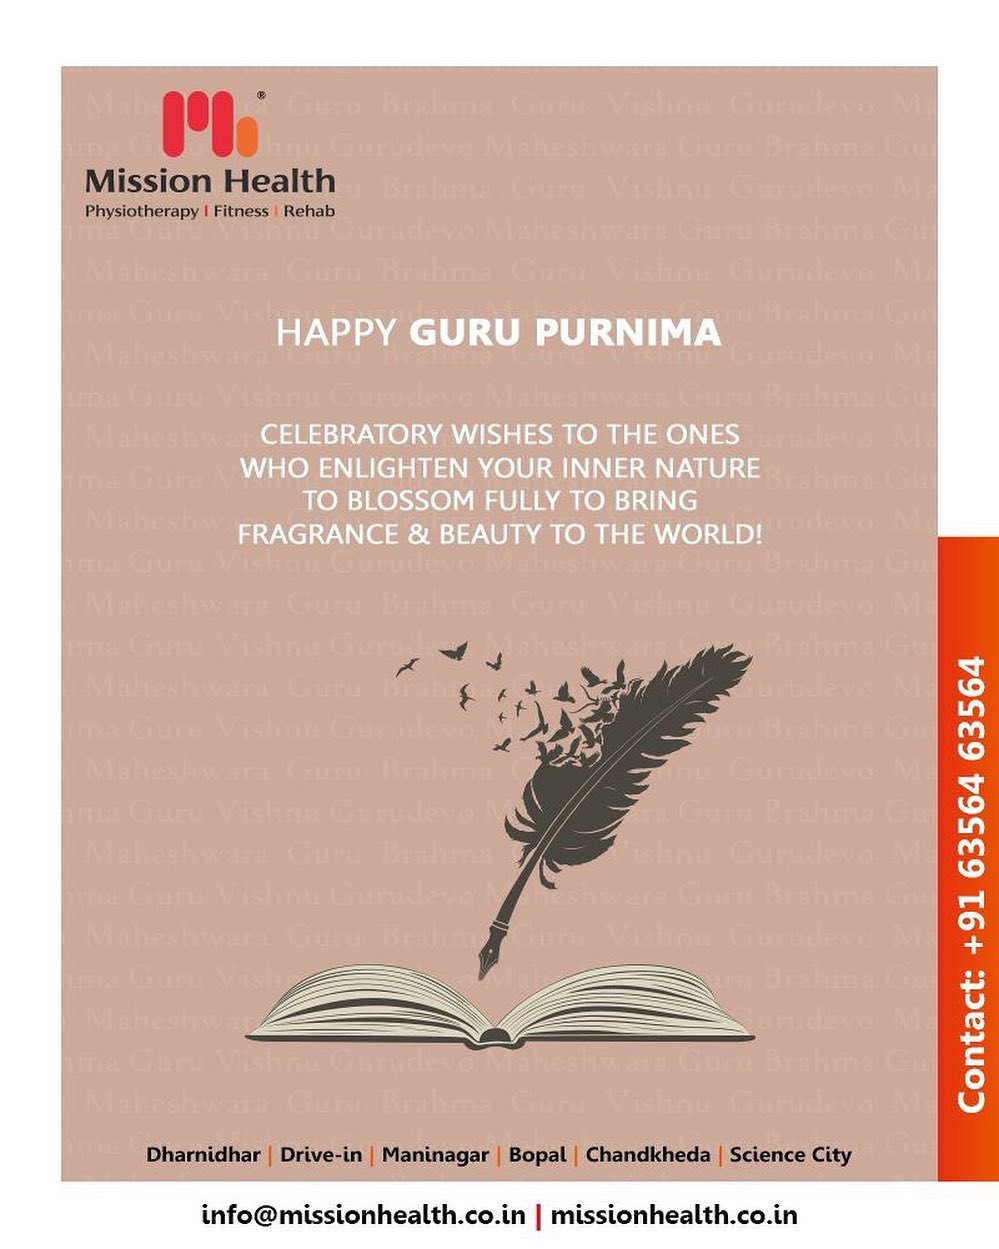 Celebratory wishes to the ones who enlighten your inner nature to blossom fully to bring fragrance & beauty to the world!  #GuruPurnima #GuruPurnima2019 #गुरुपुर्णिमा #IndianFestival #MissionHealth #MissionHealthIndia #AbilityClinic #MovementIsLife